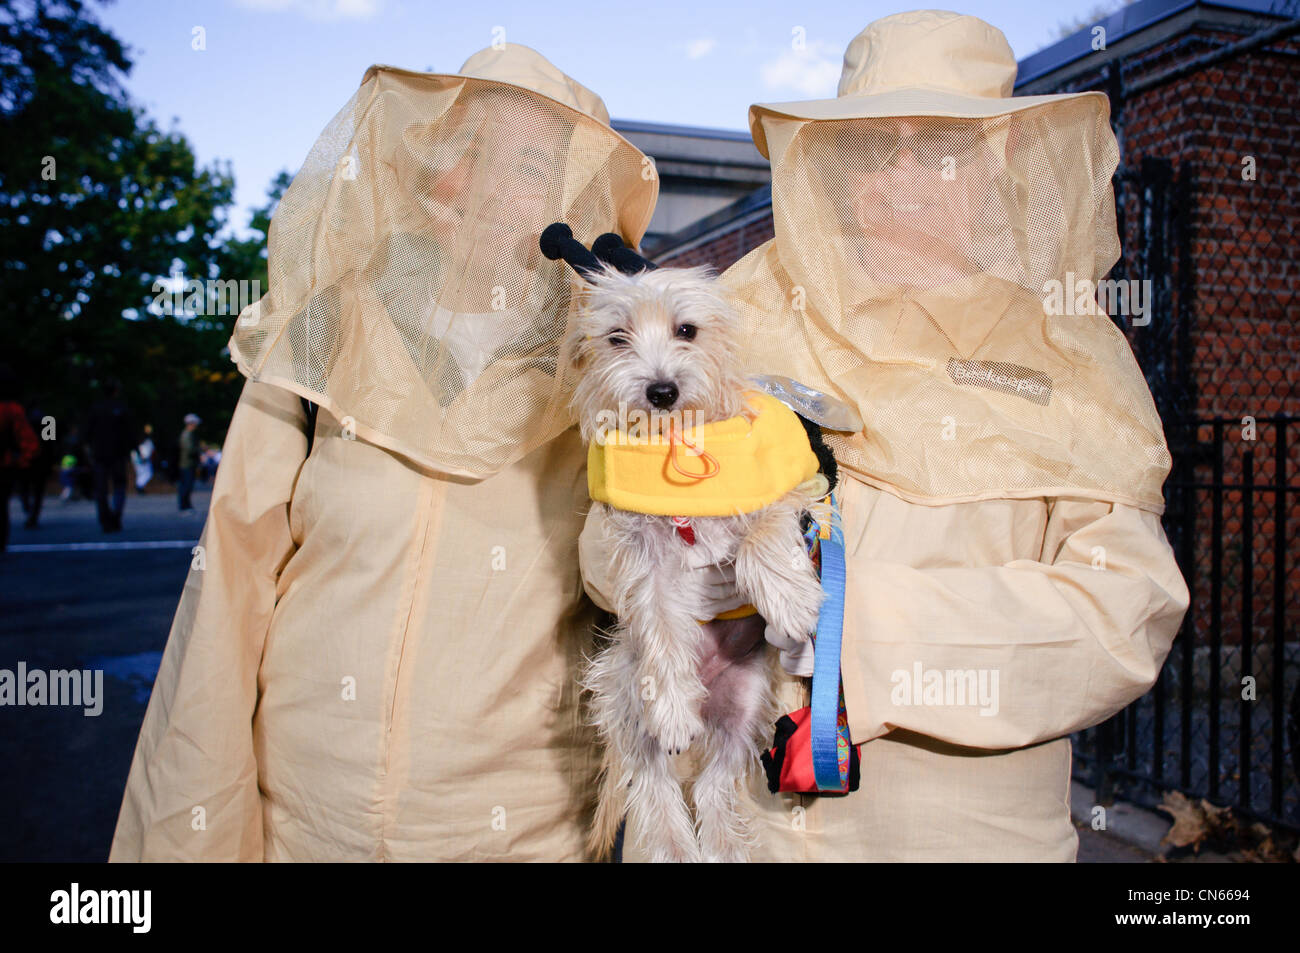 Contestant (a bee) at the Halloween Dog Parade in Tompkins Square Park in Manhattan, New York City. October 22, - Stock Image